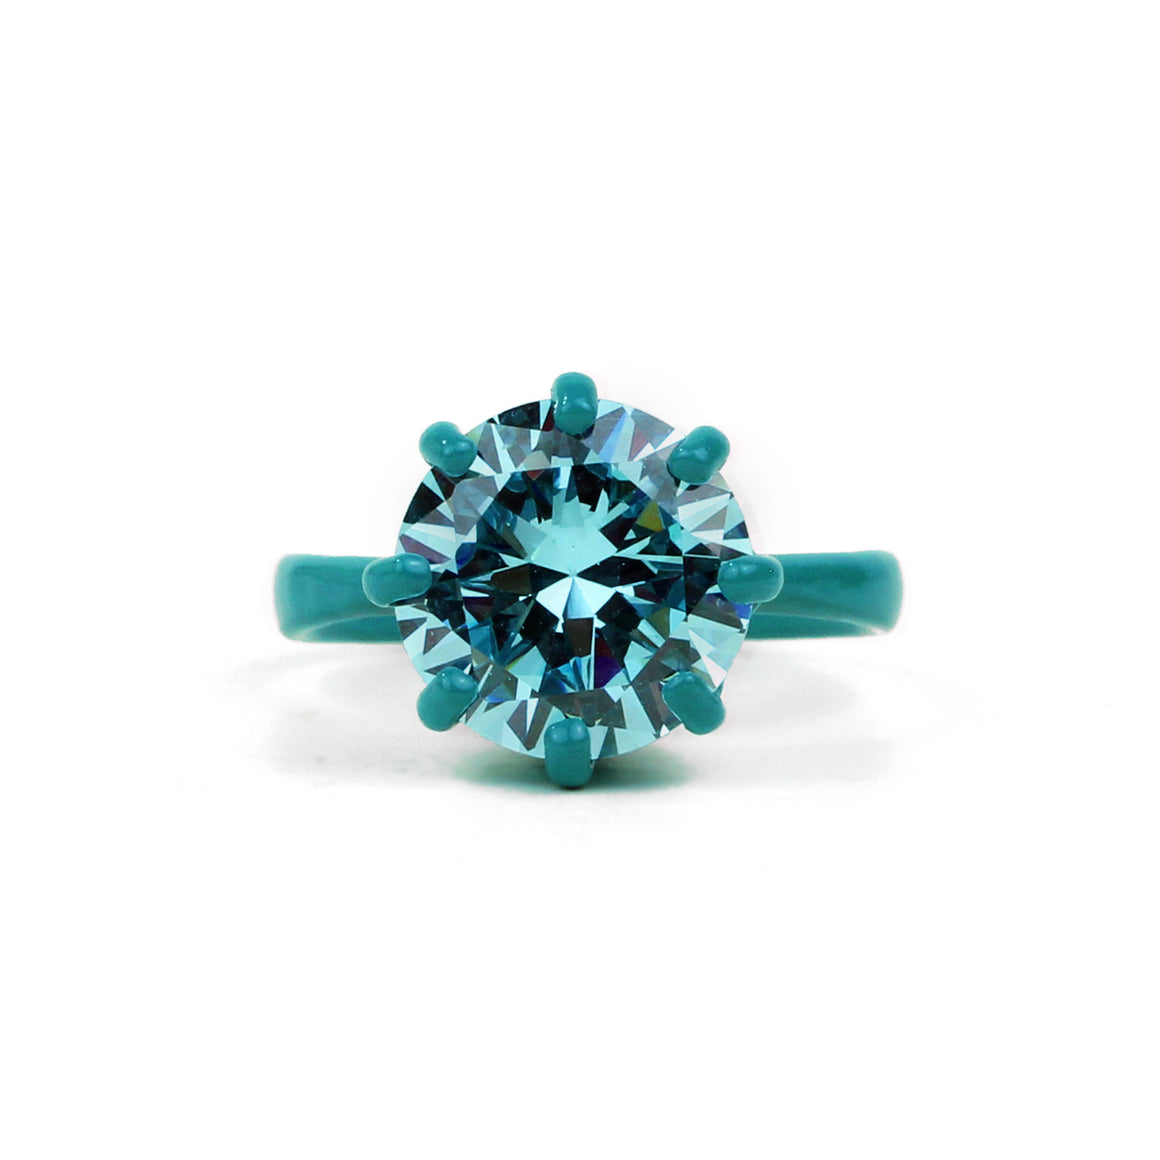 OMG Bling Ring in Teal - 11mm Round Stone - Sizes 6, 7, and 8